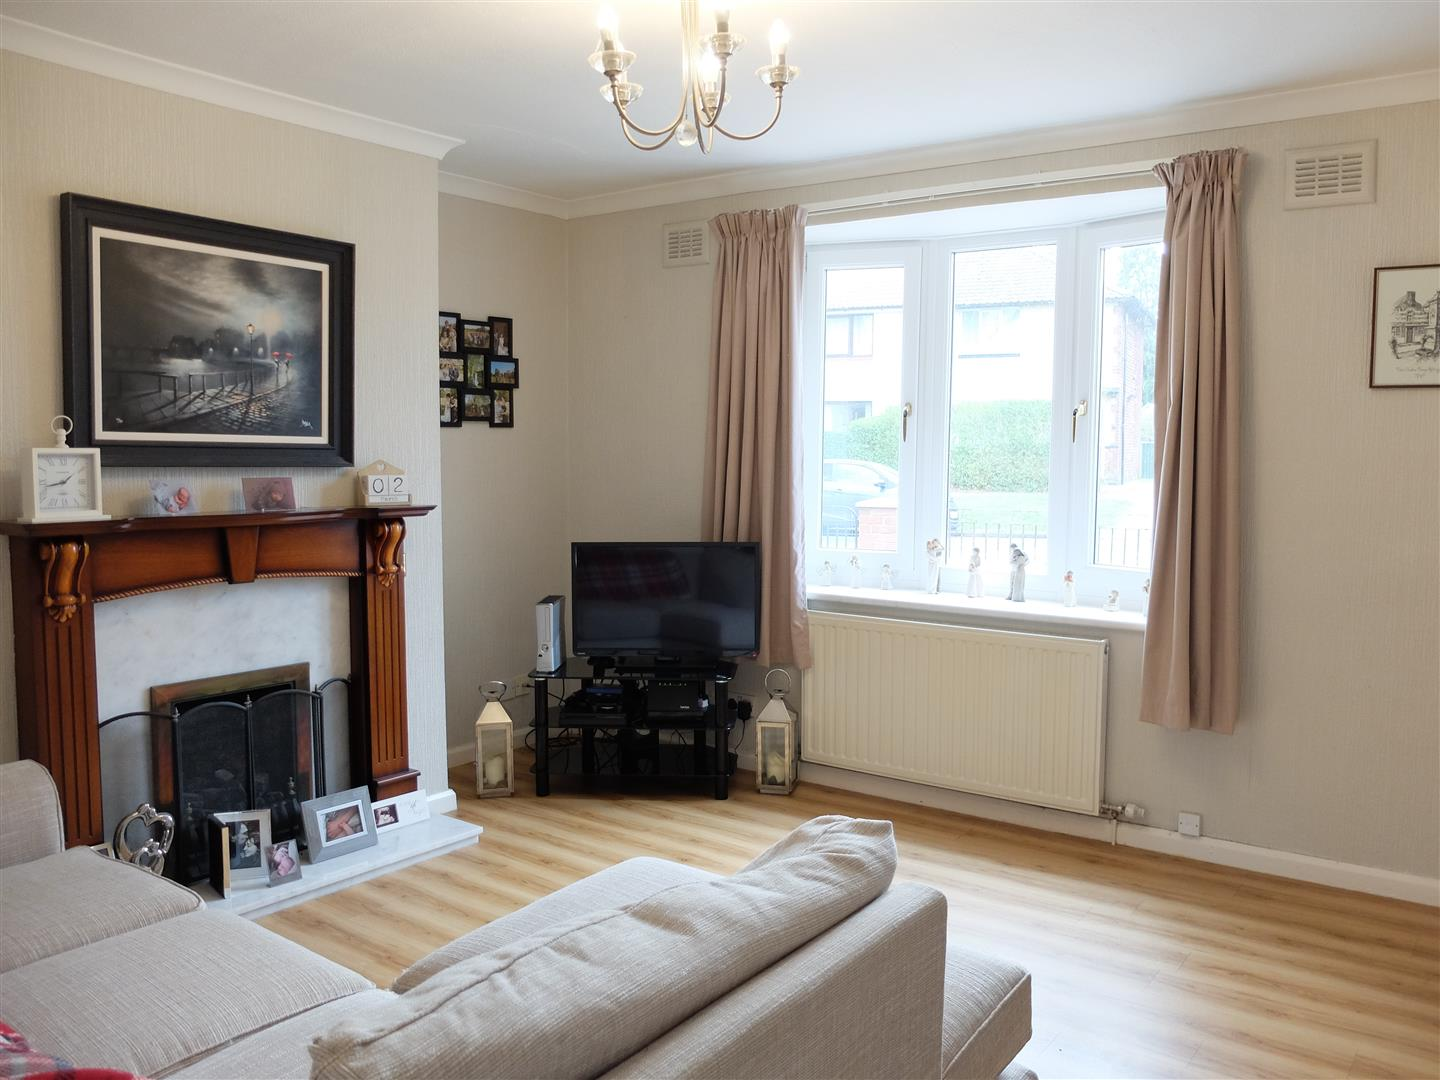 4 Bedrooms House - Semi-Detached For Sale 6 Lediard Avenue Carlisle